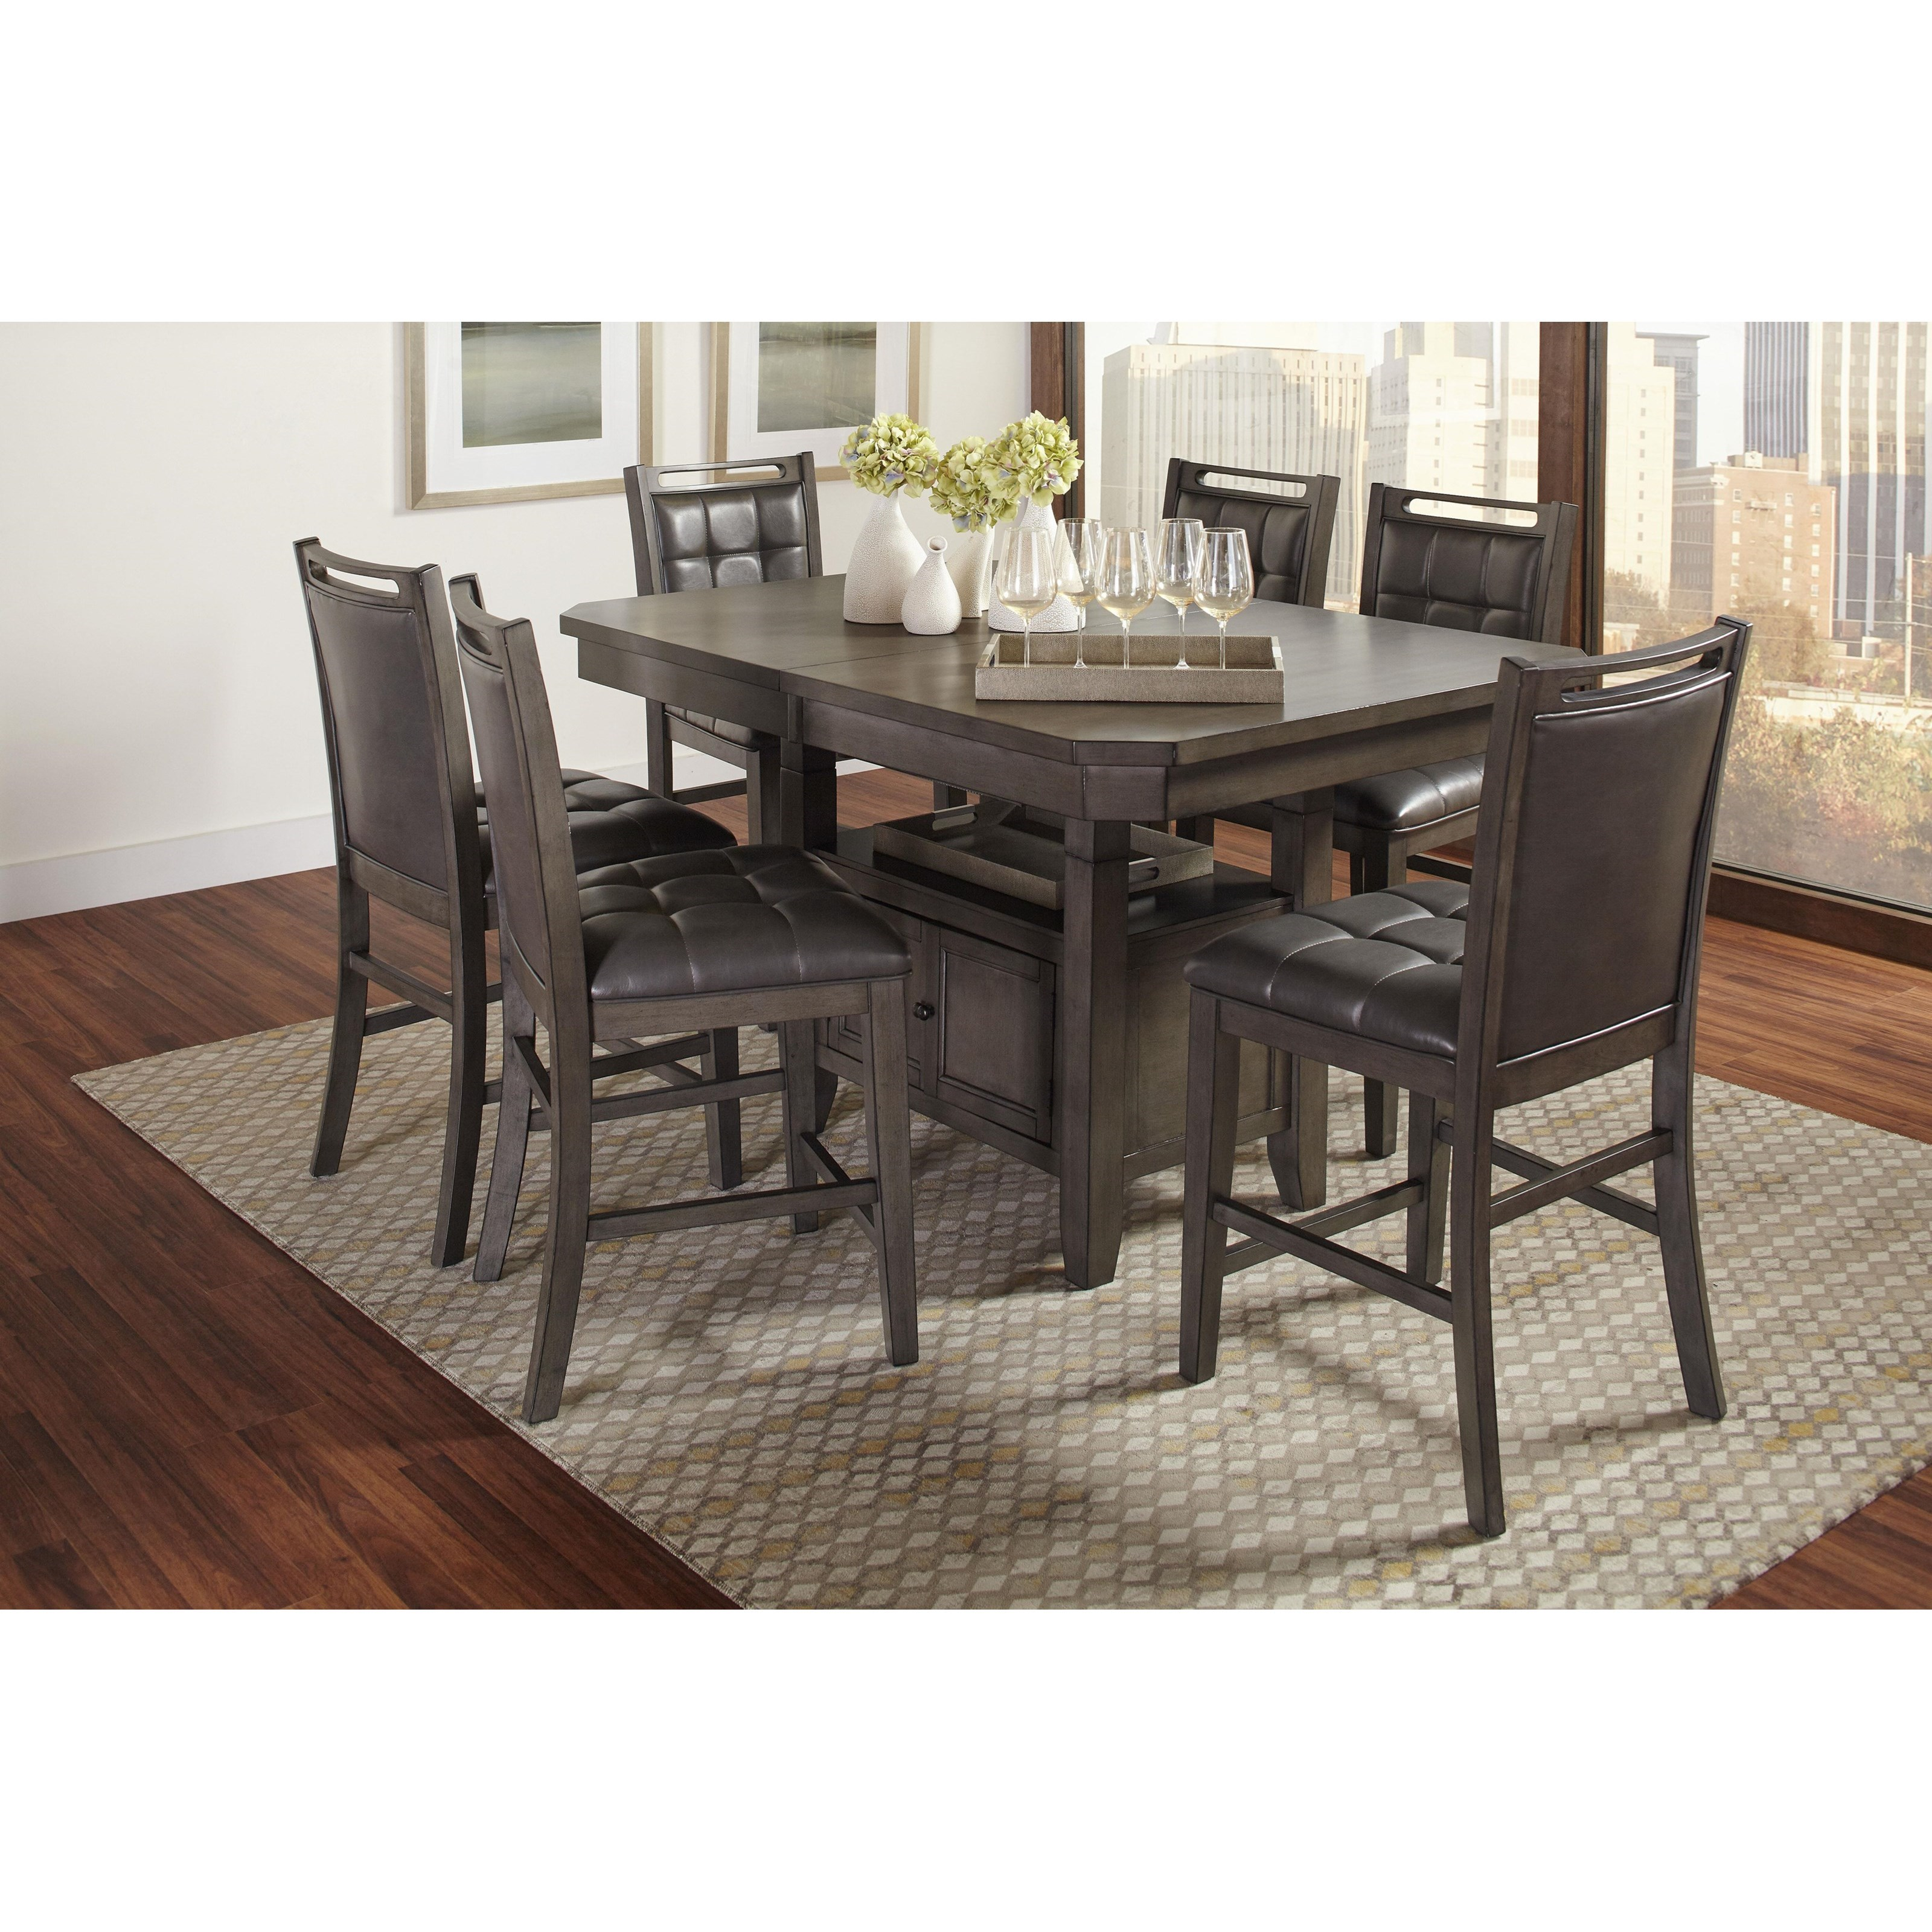 low dining room table | Jofran Manchester High/Low Rectangle Dining Table | Steger ...